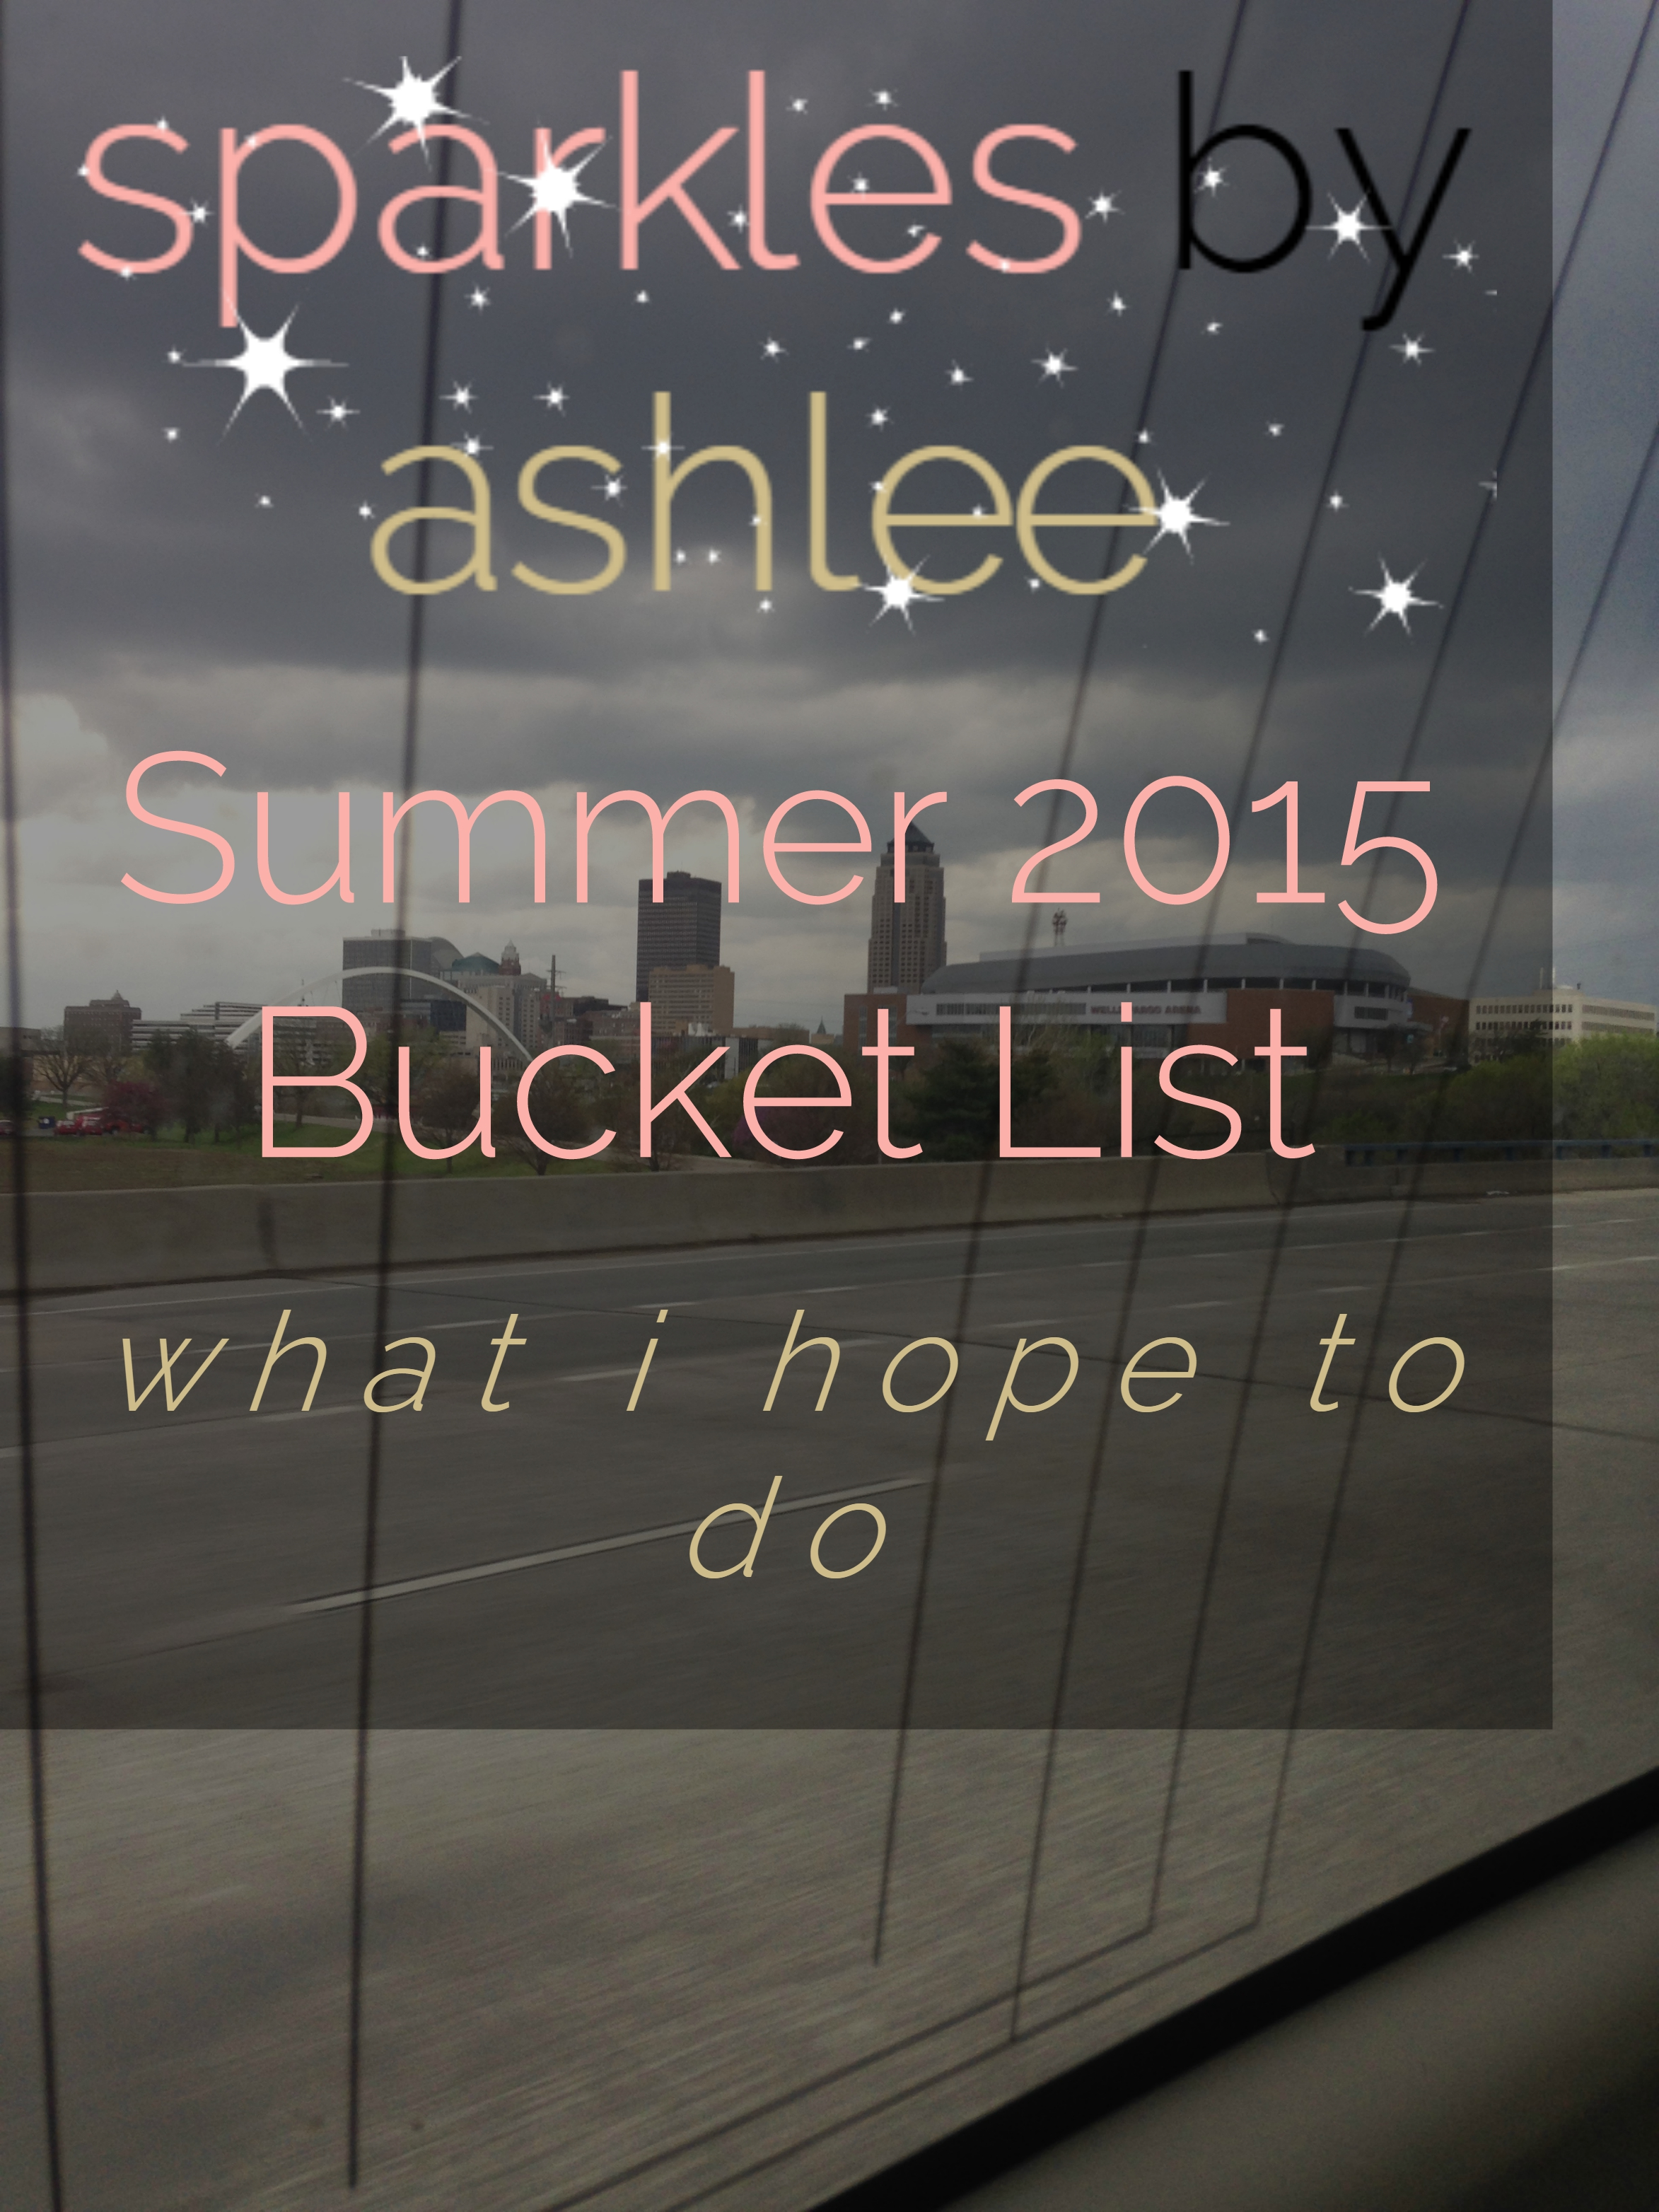 Lets-Set-Goals-Summer-2015-Bucket-List-Sparkles-by-Ashlee.jpg